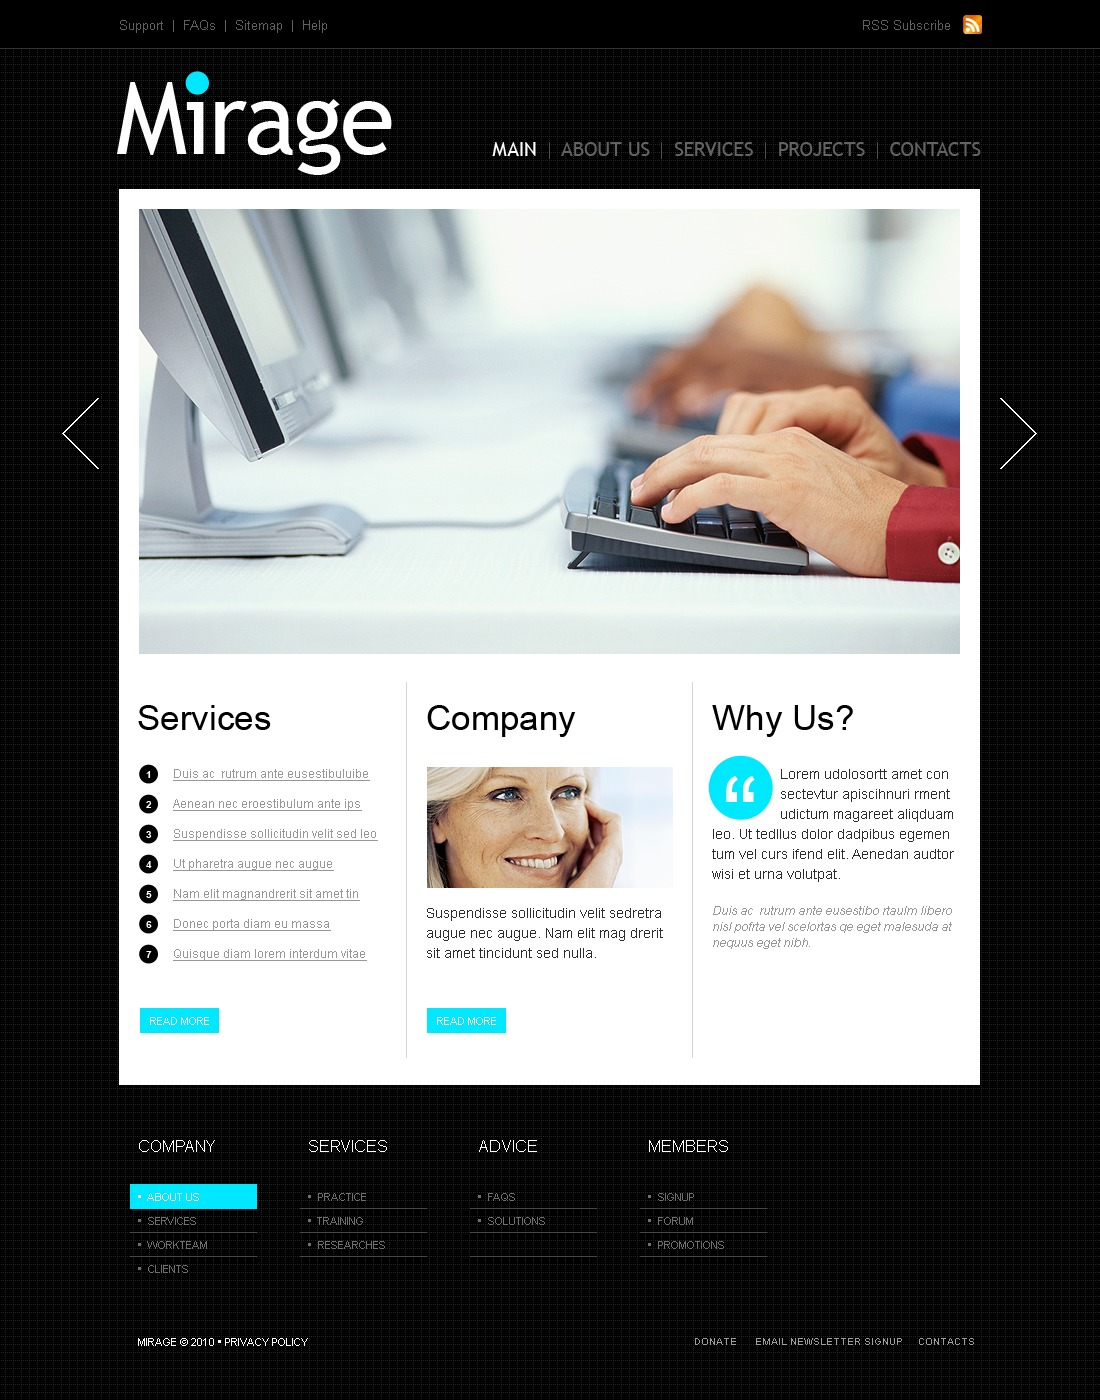 The Mirage Business Company PSD Design 54133, one of the best PSD templates of its kind (business, wide, jquery), also known as mirage business company PSD template, corporate solutions PSD template, innovations PSD template, contacts PSD template, service PSD template, support PSD template, information dealer PSD template, stocks PSD template, team PSD template, success PSD template, money PSD template, marketing PSD template, director PSD template, manager PSD template, analytics PSD template, planning PSD template, limited PSD template, office PSD template, sales and related with mirage business company, corporate solutions, innovations, contacts, service, support, information dealer, stocks, team, success, money, marketing, director, manager, analytics, planning, limited, office, sales, etc.